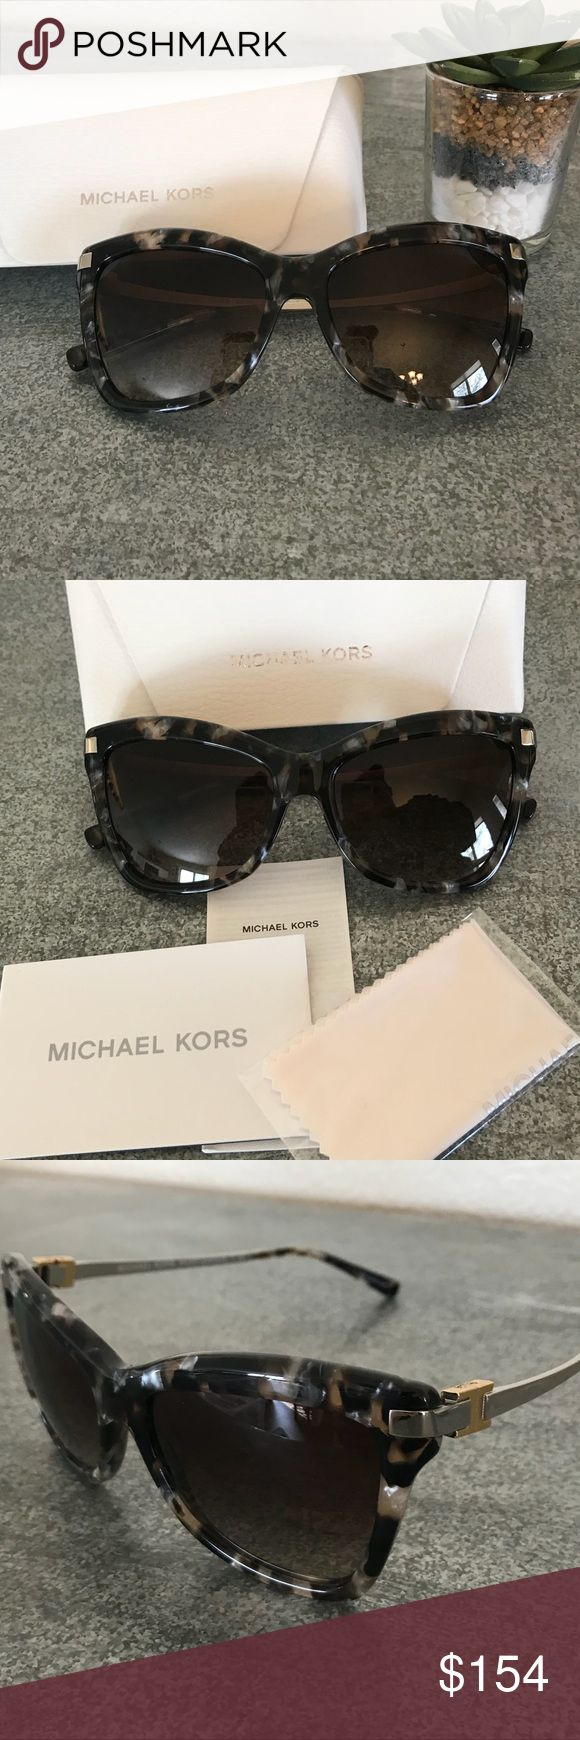 [Michael Kors] Pearl Tortoise Cat Eye Sunglasses [Michael Kors] Audrina III Brown Mosaic (Pearl Tortoise) Cat Eye Sunglasses. Um... get these before I keep them! They are that incredible! Michael Kors Accessories Sunglasses